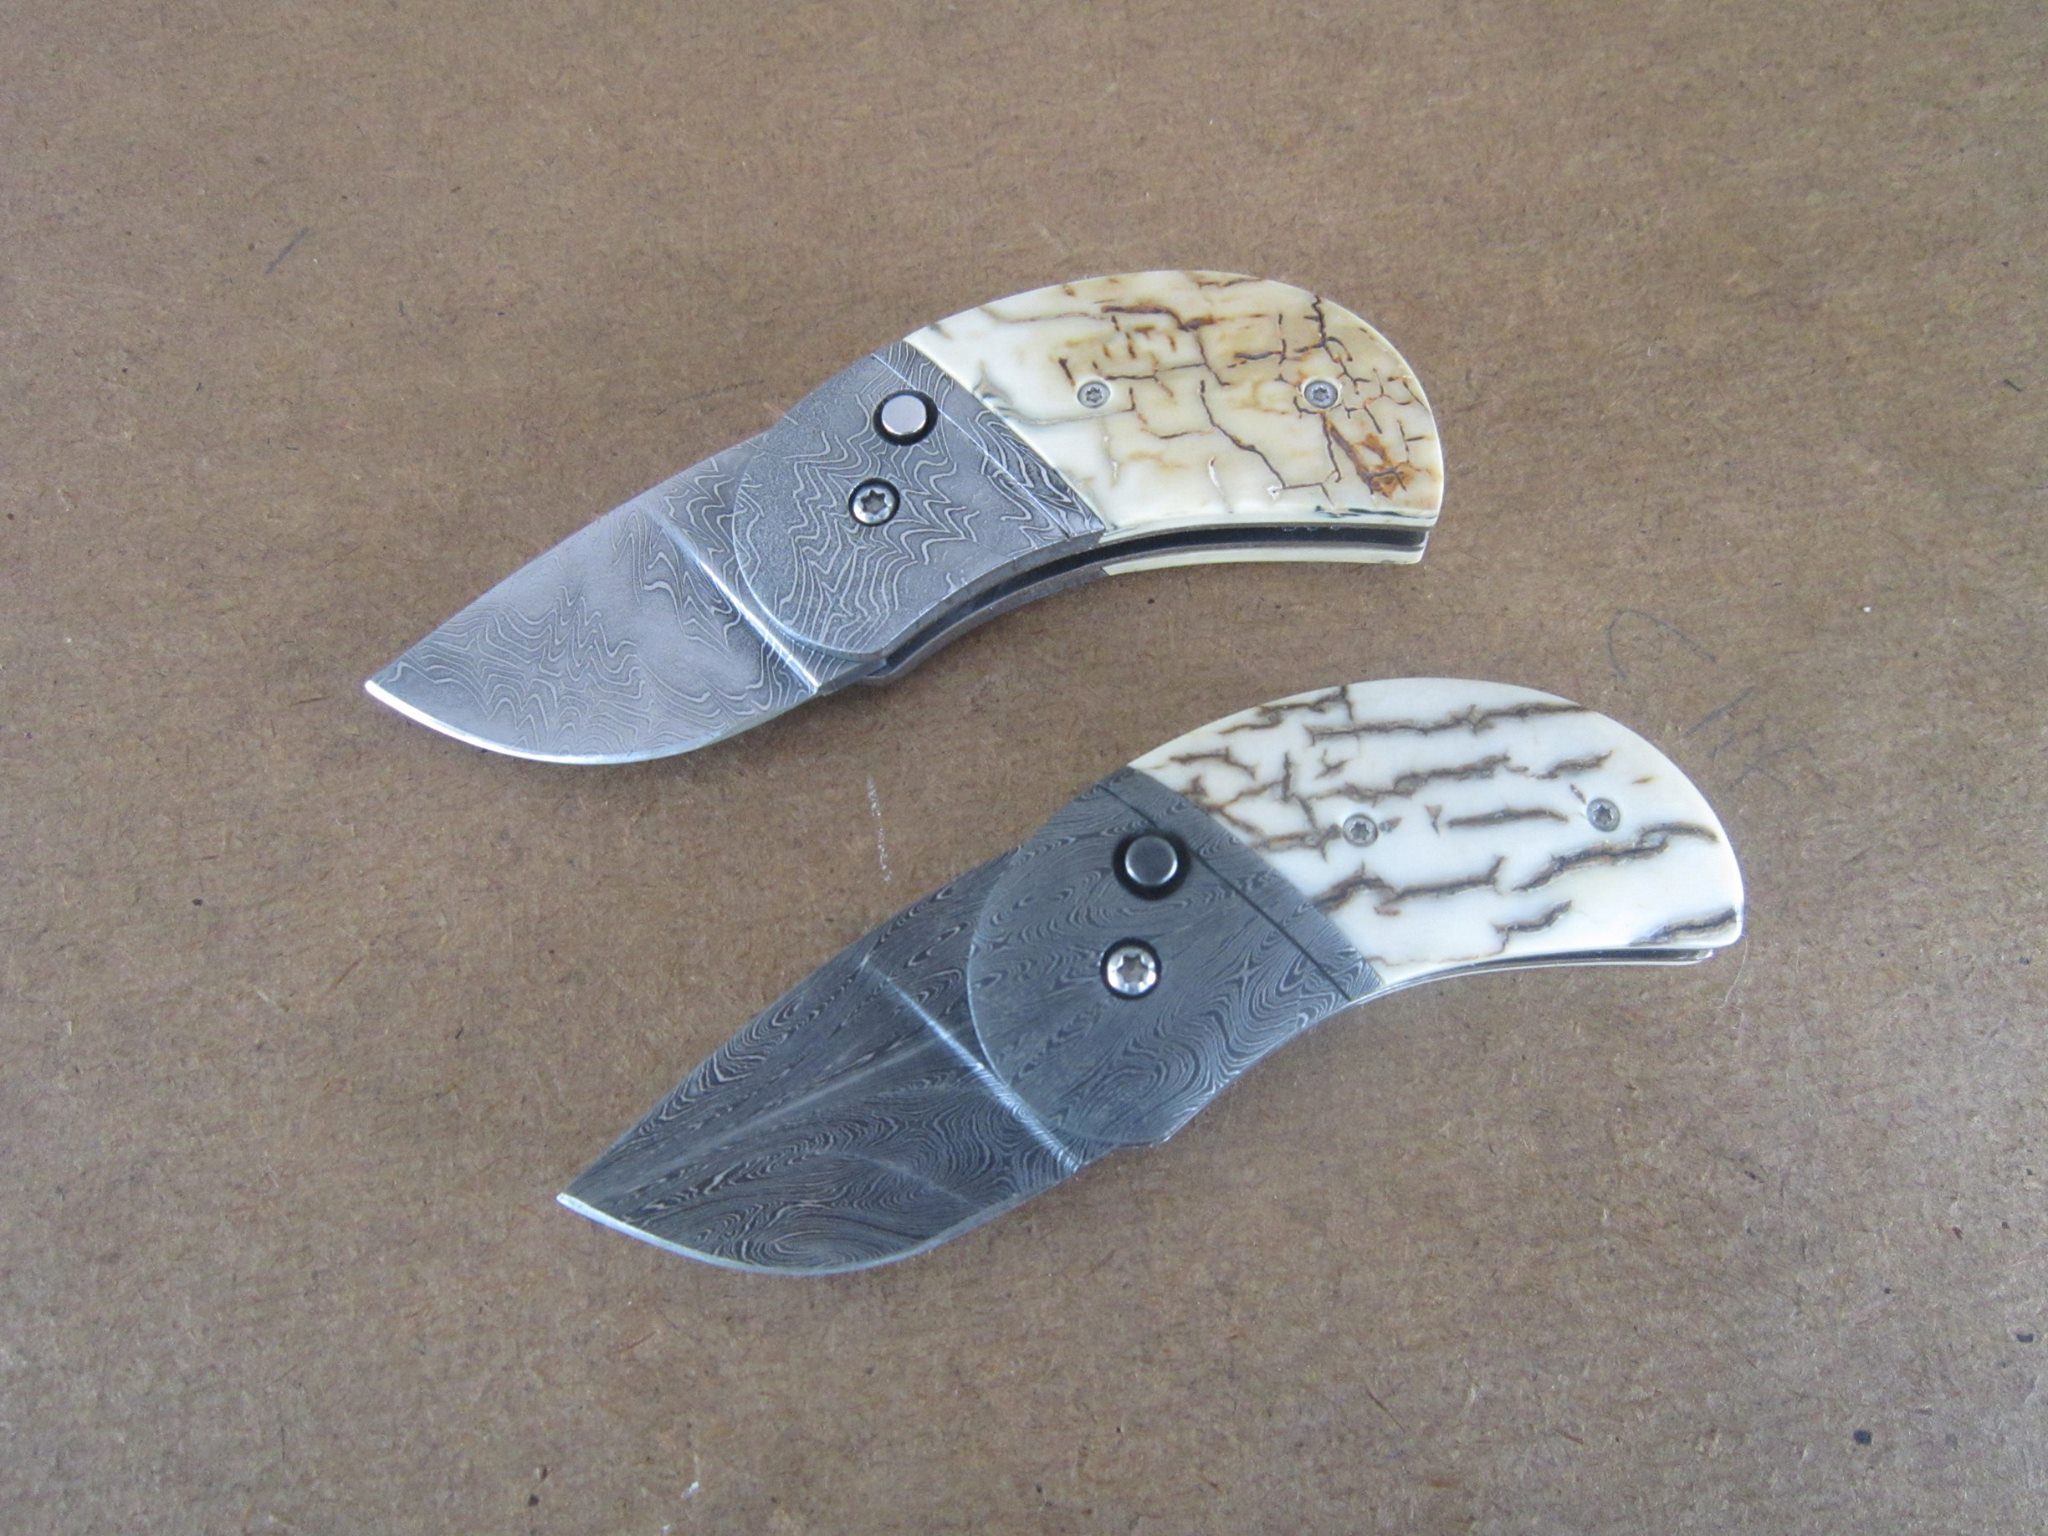 phil booth folder HHH damascus